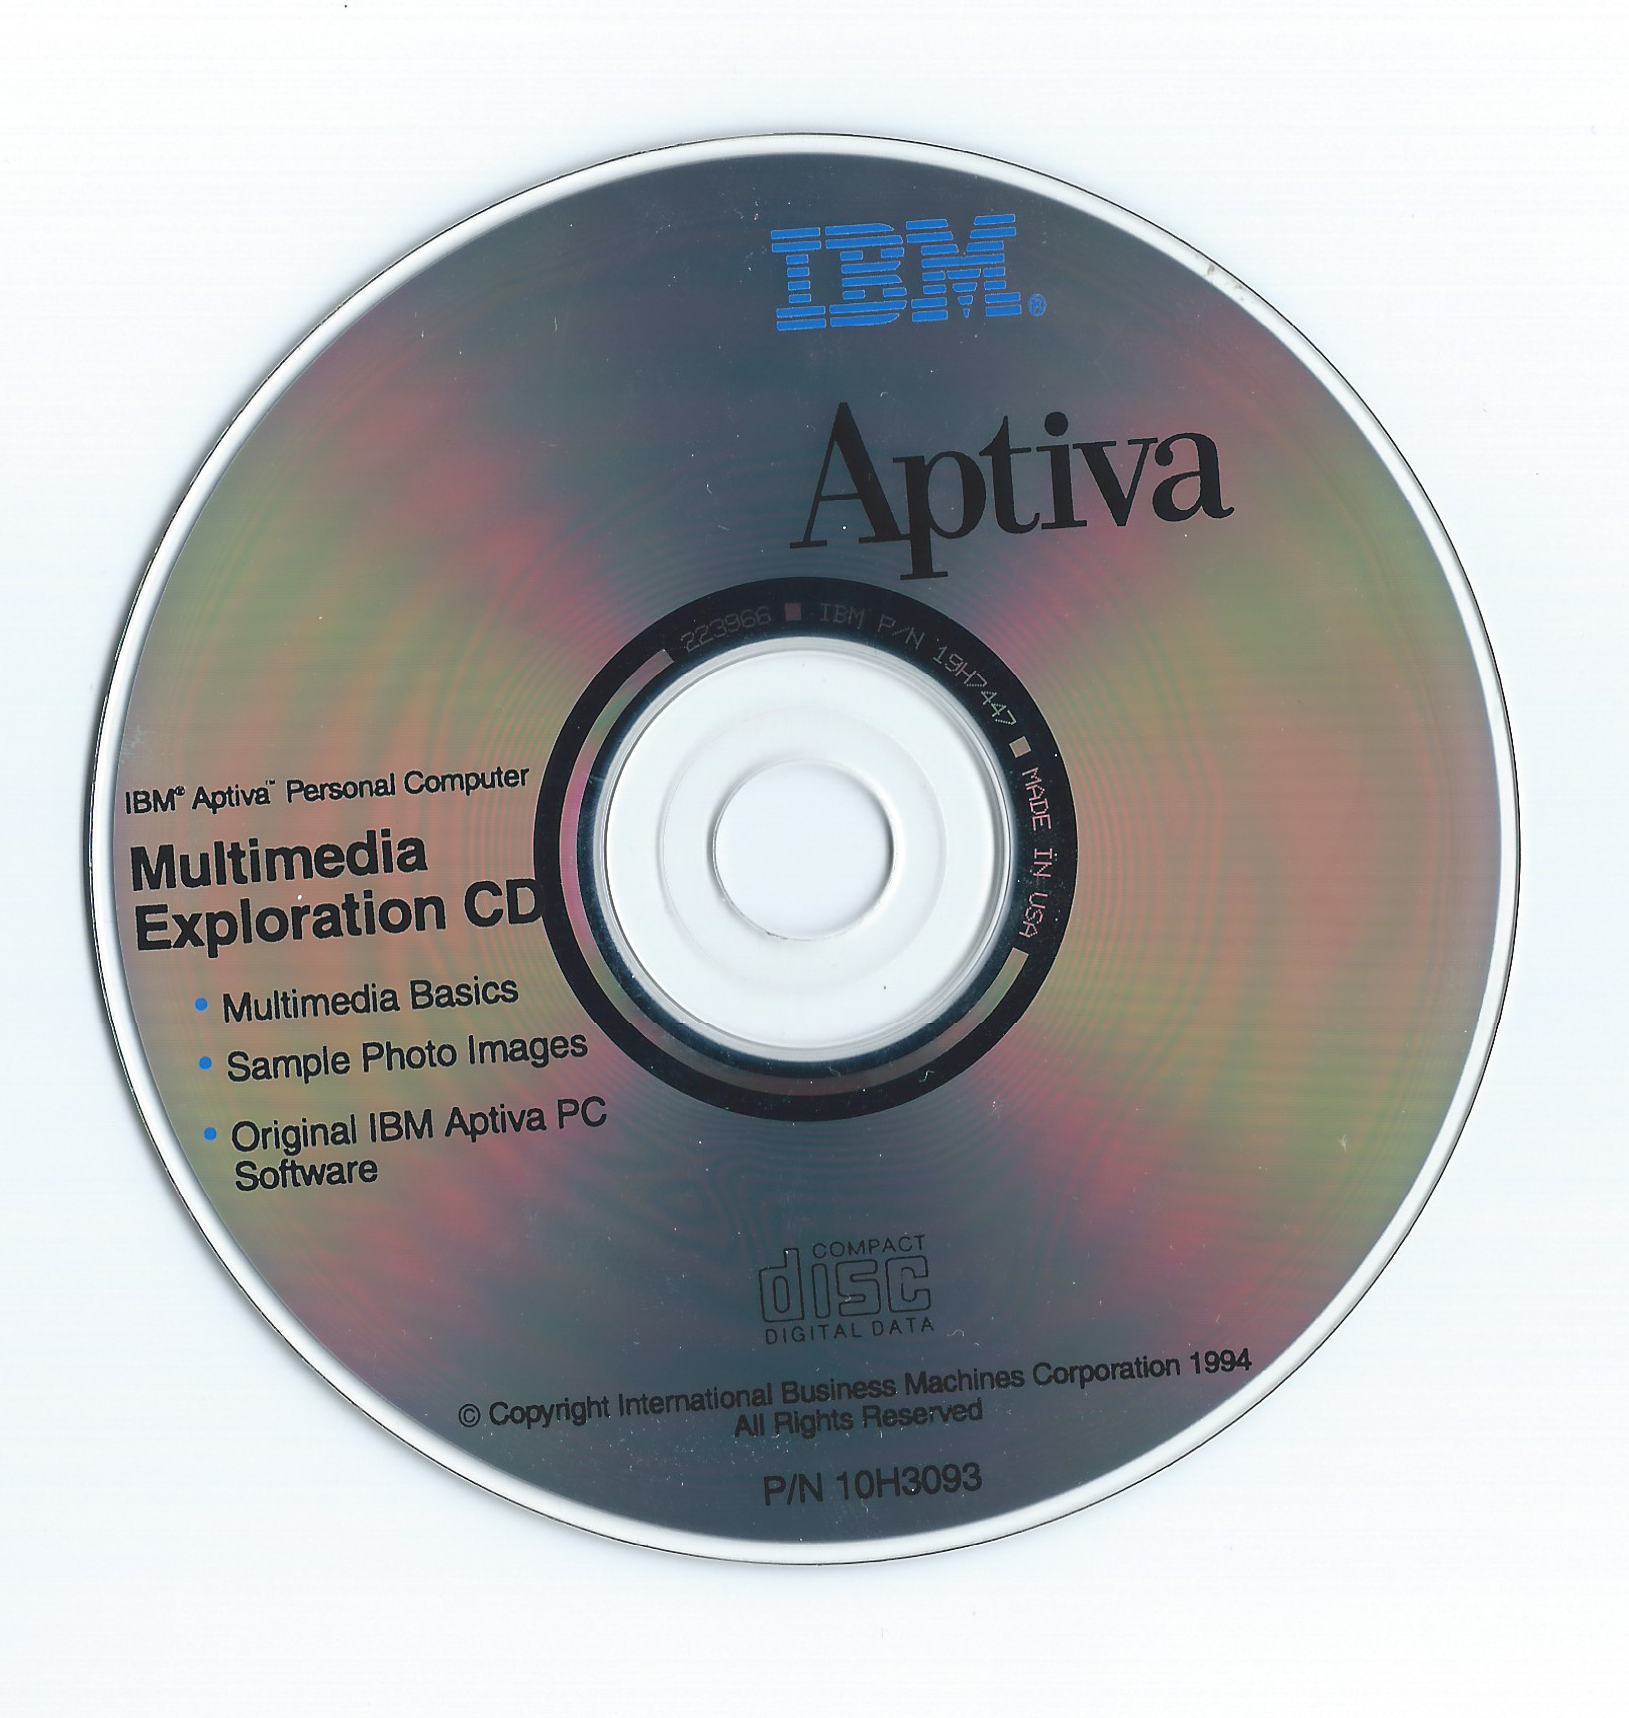 This disk is infamous for the hover game and 2 music videos hosted